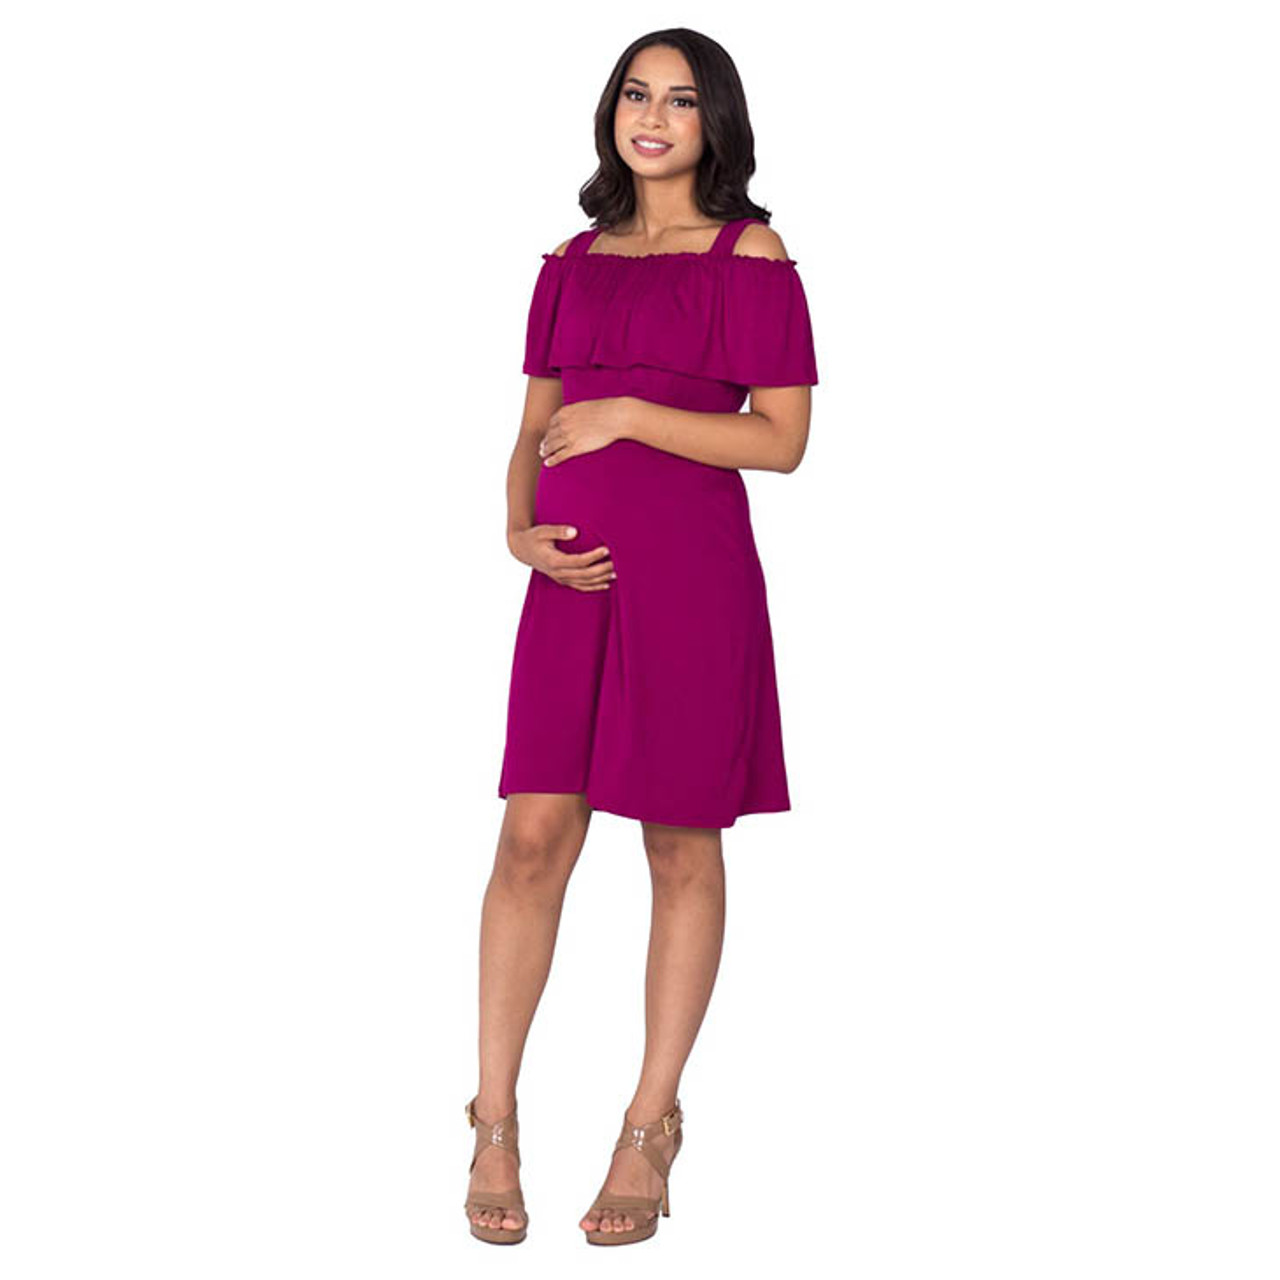 a4d7eed1c752c Maternity/Nursing Off the Shoulder Dress, Magenta - Spearmint Ventures, LLC